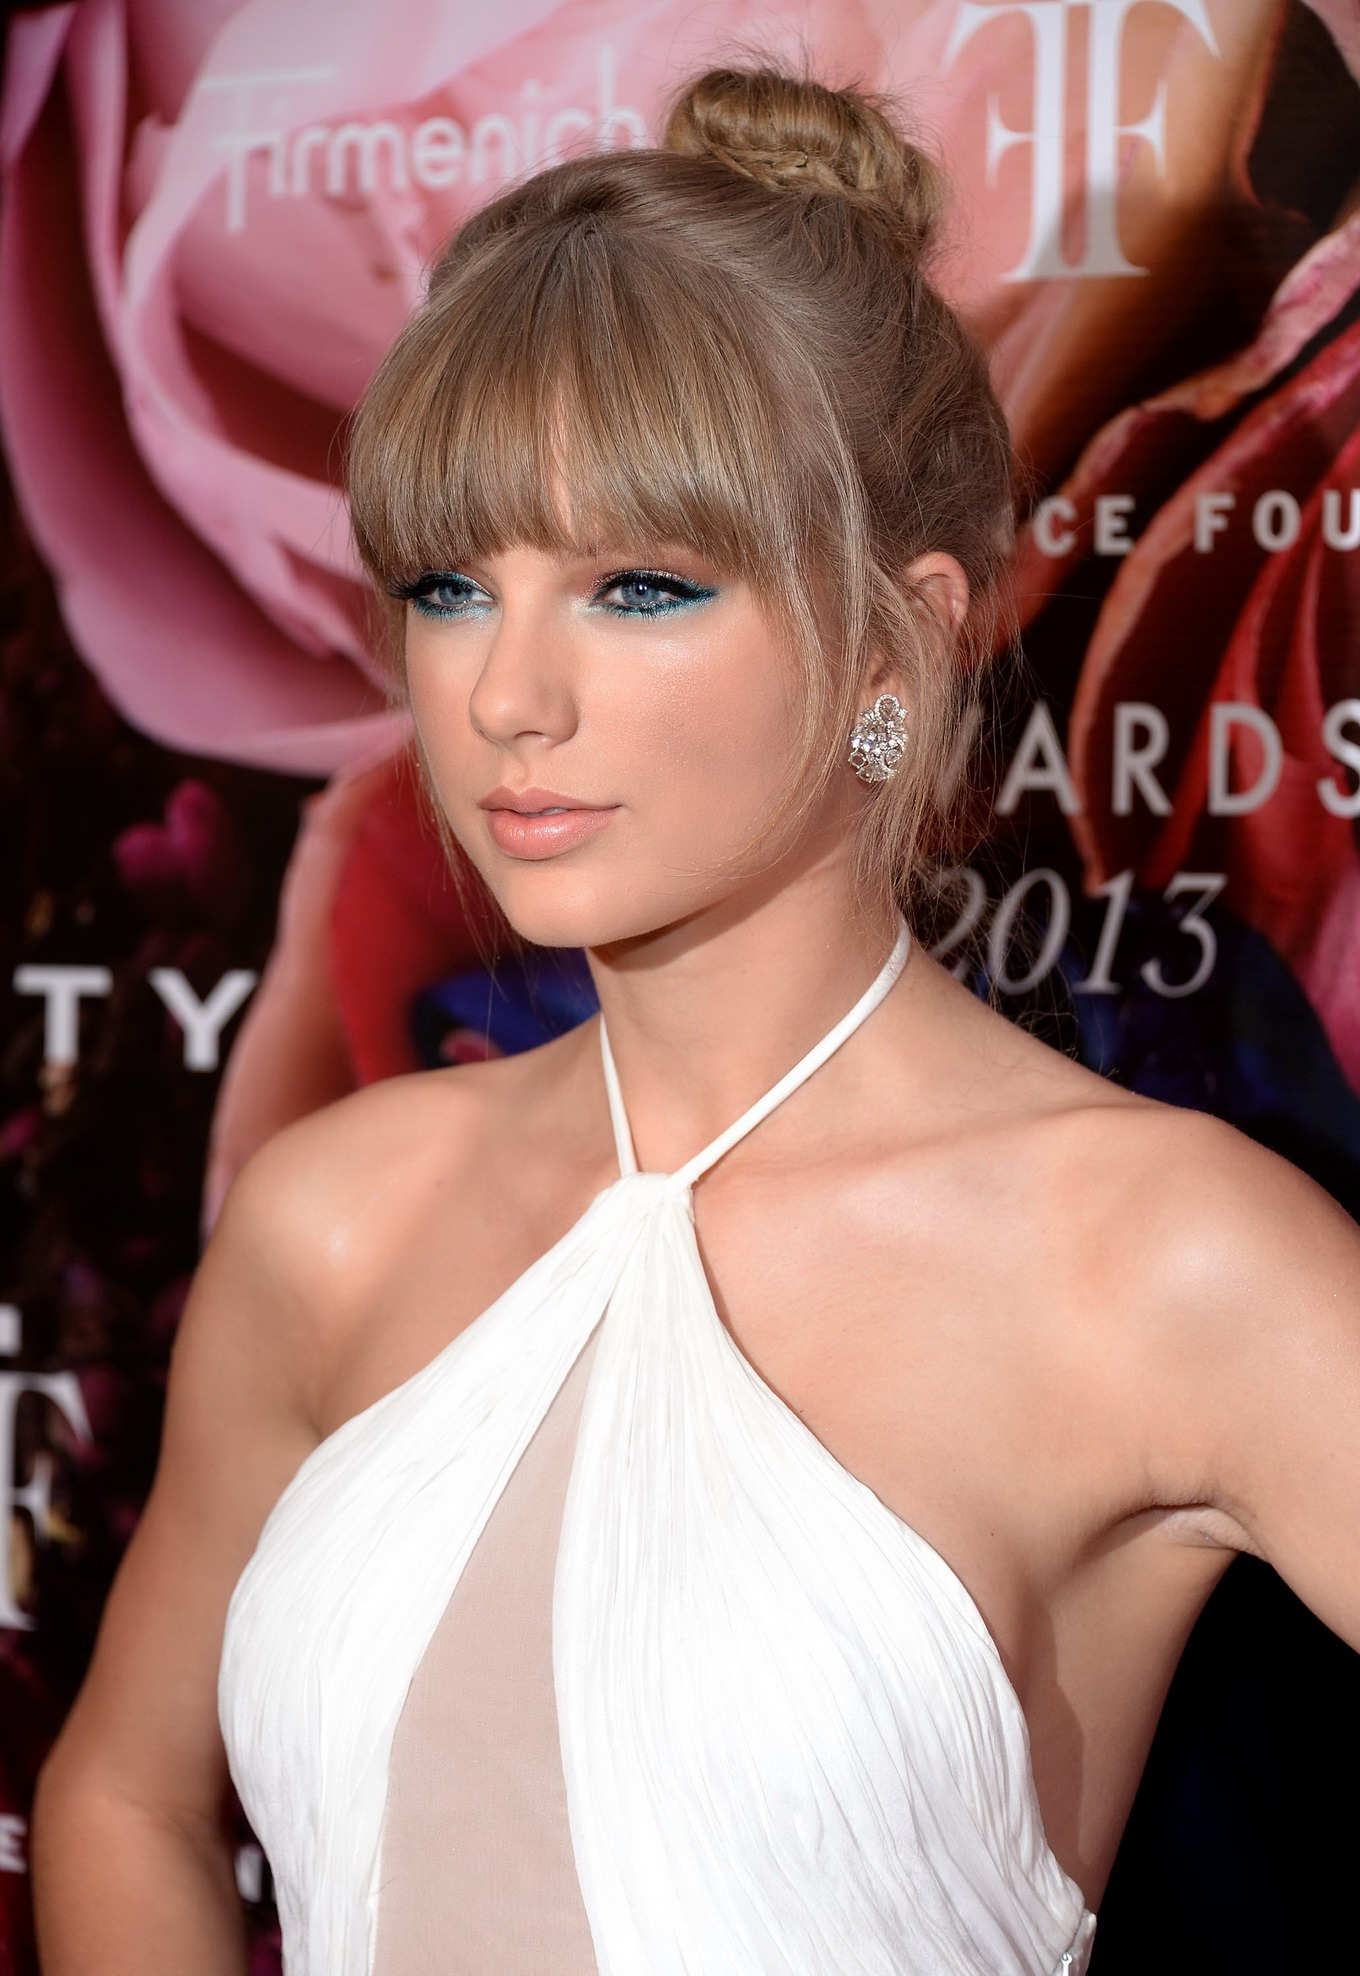 Taylor Swift Braless Wearing White Bareback Partially See